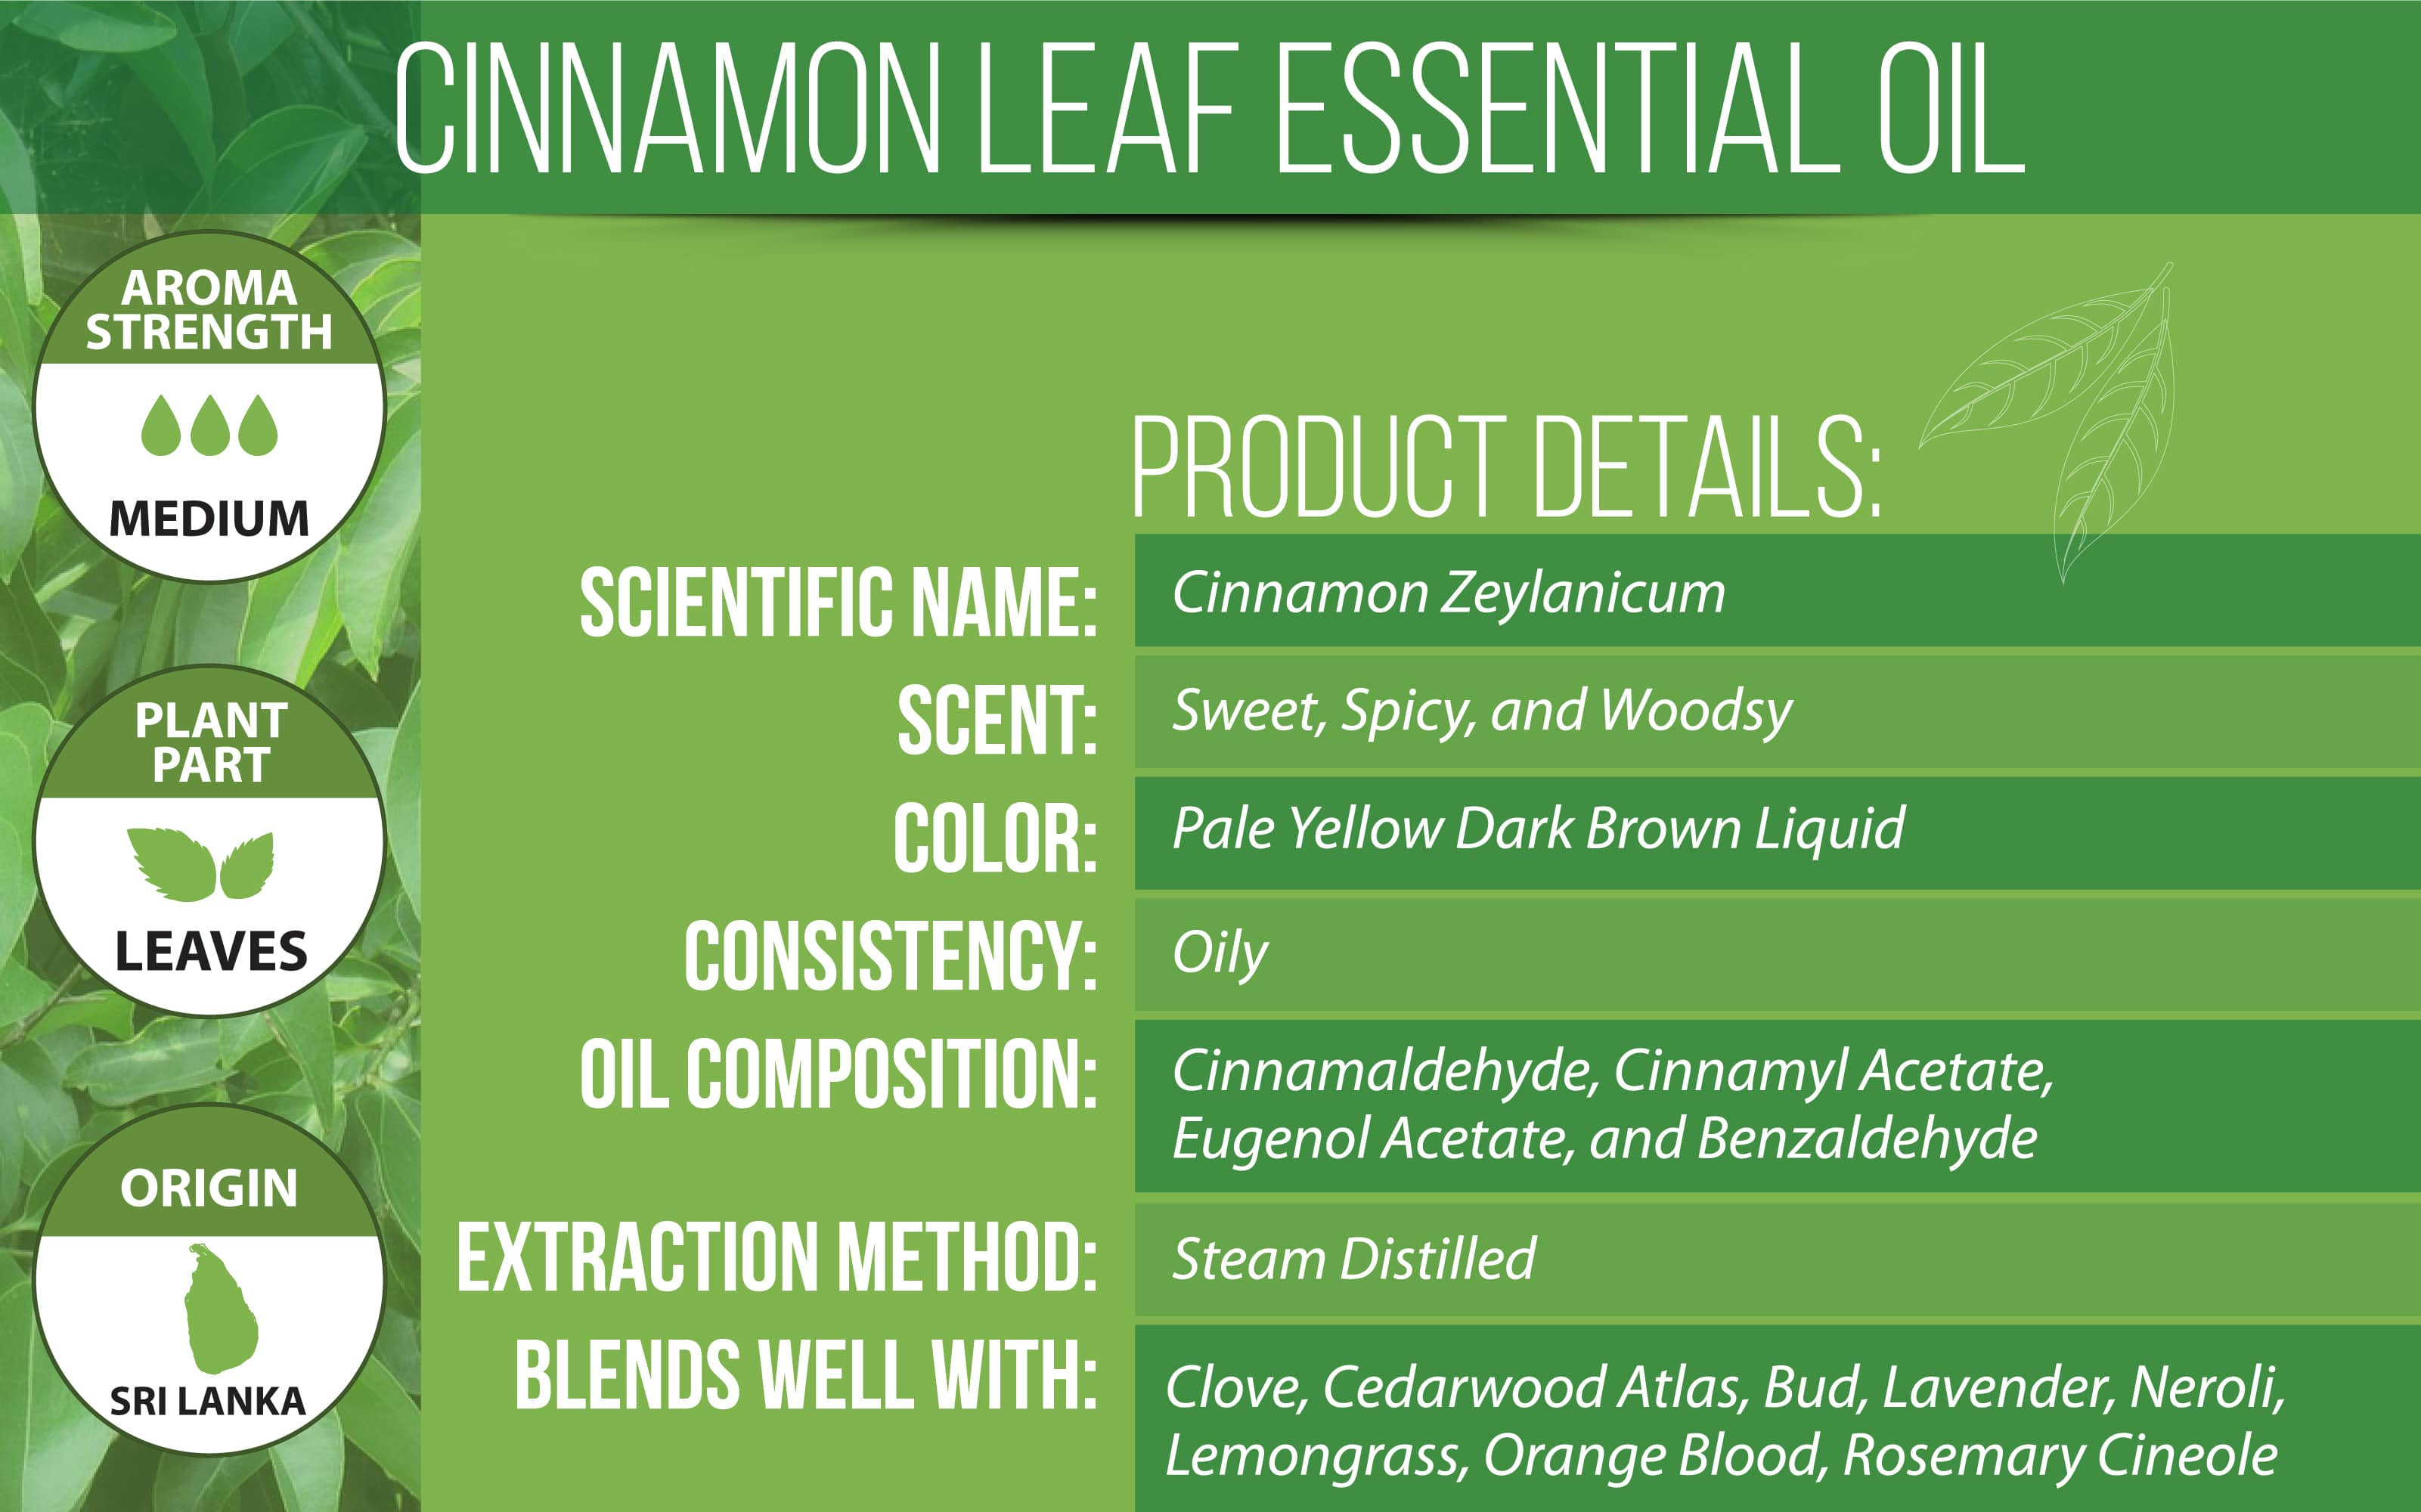 cinnamon leaf essential oil details